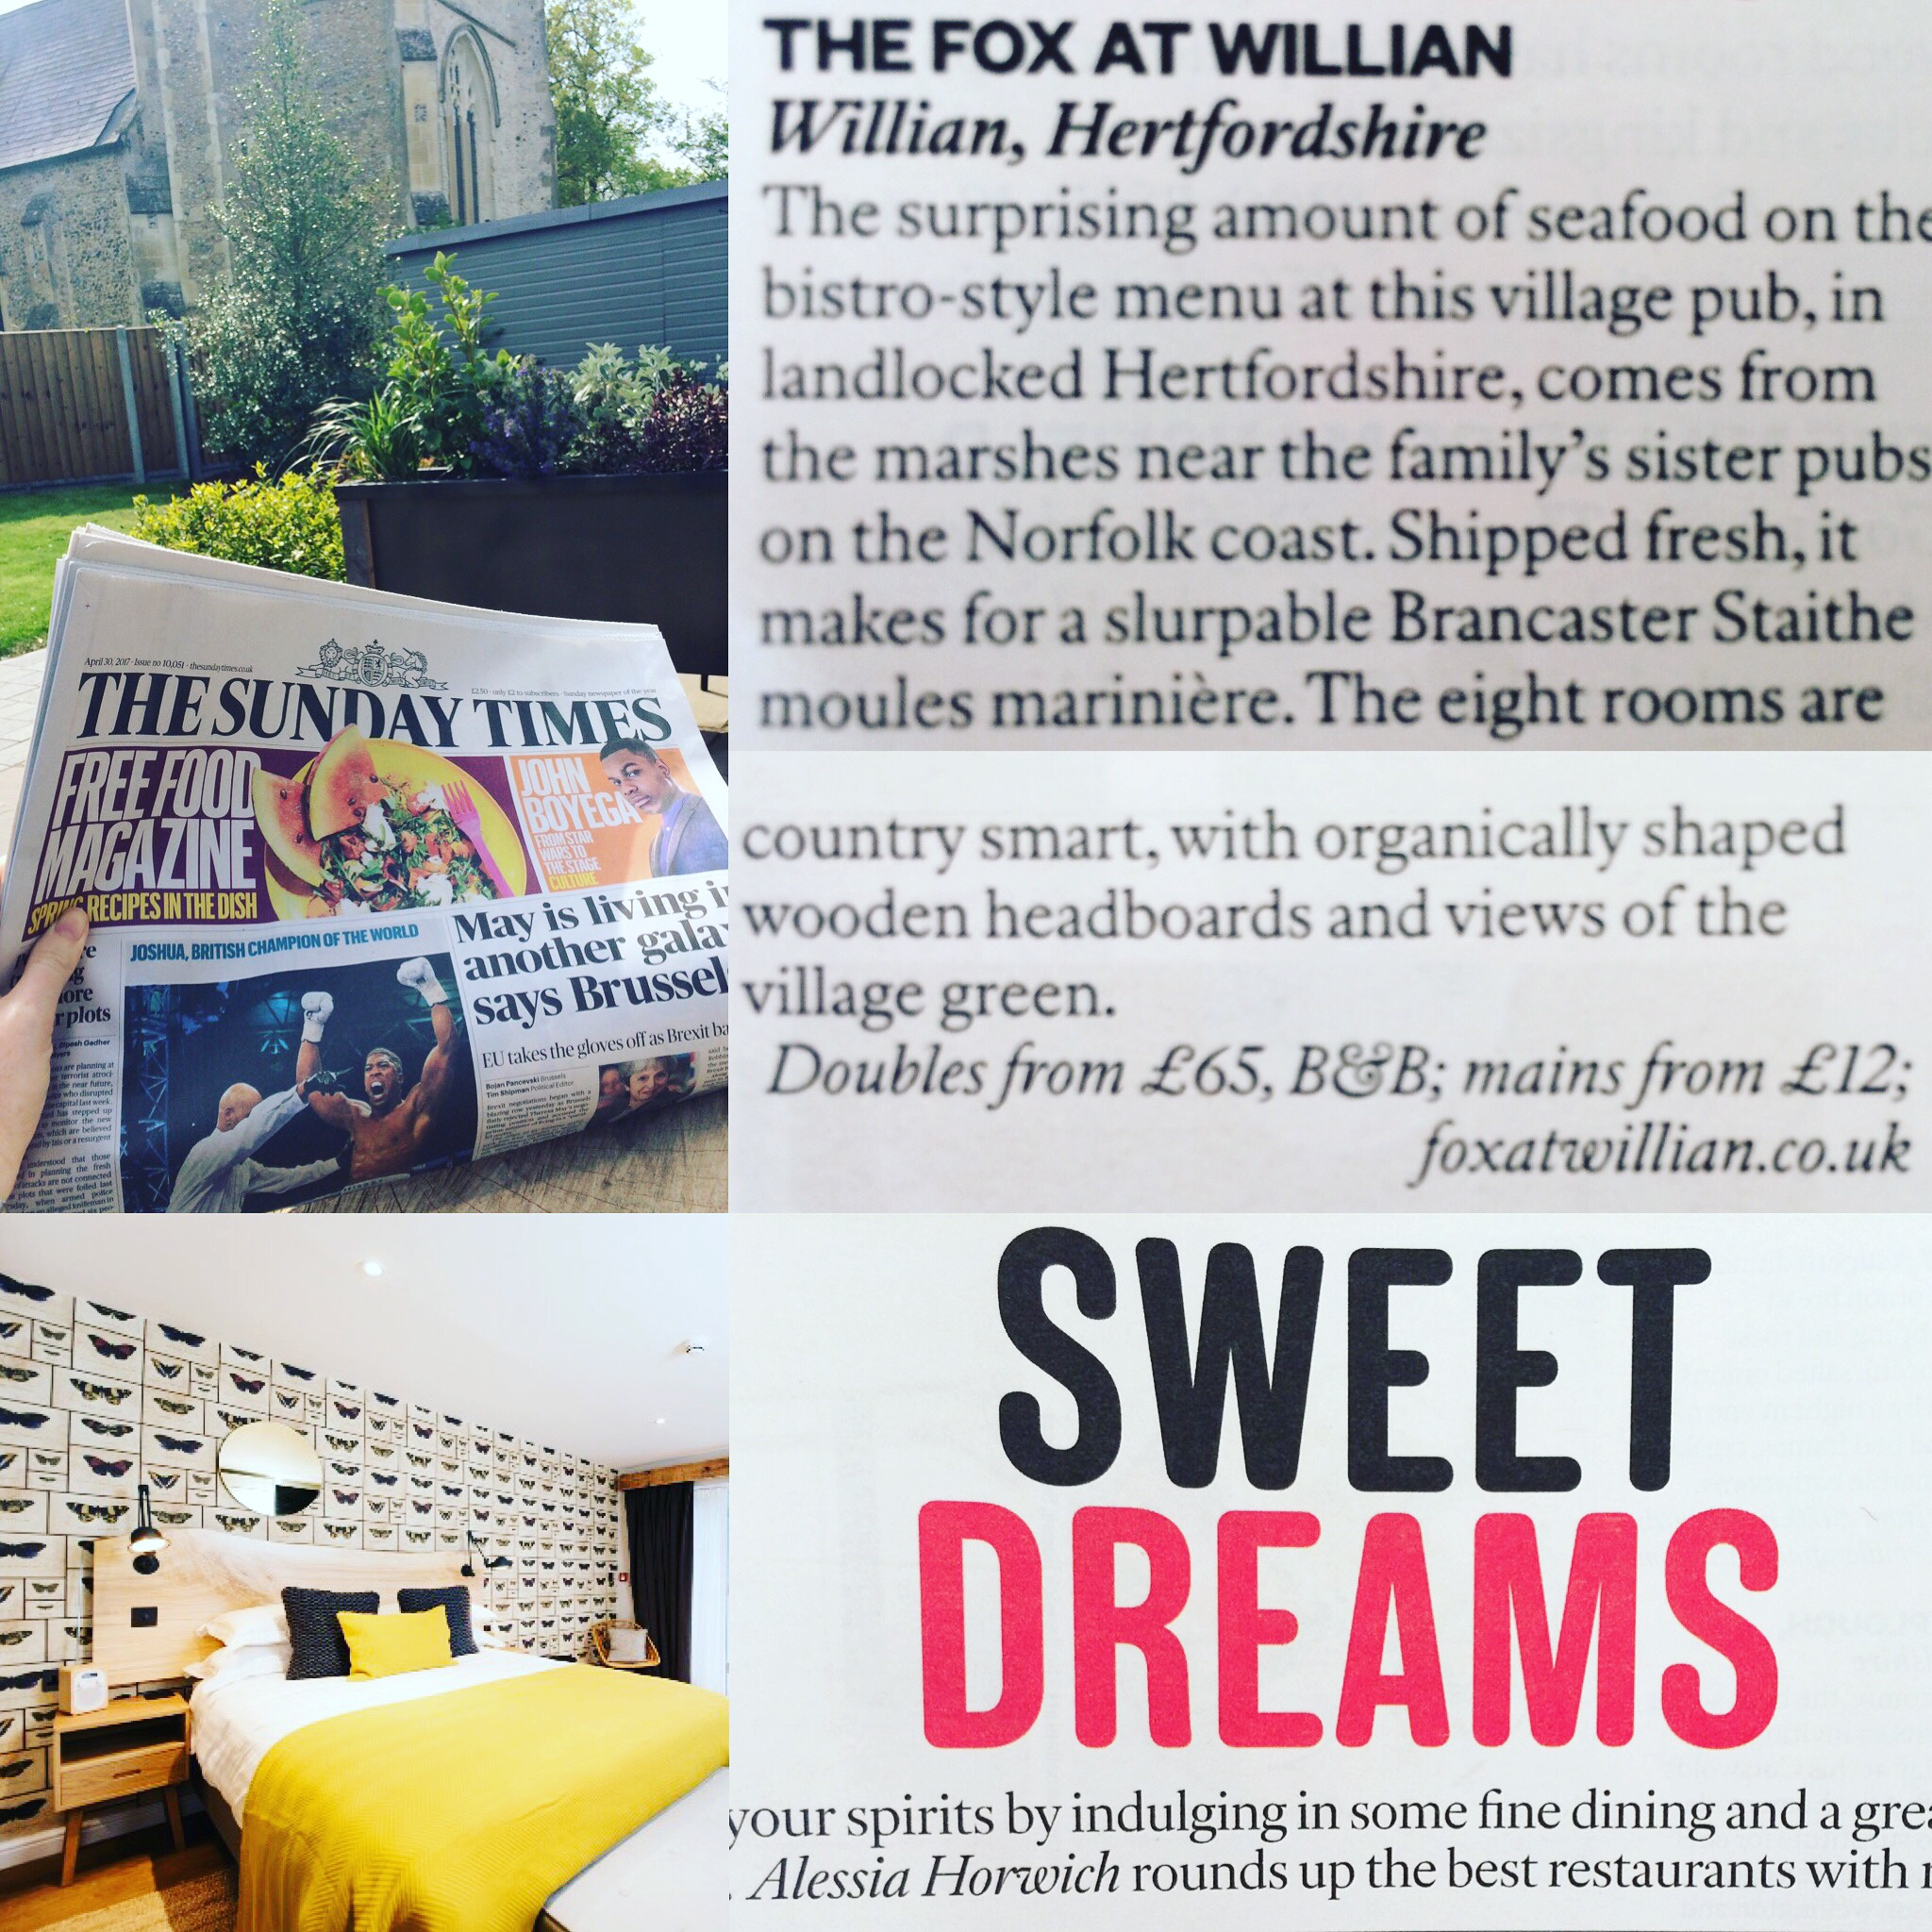 The Fox hand picked by Sunday Times as one of the best restaurants with rooms